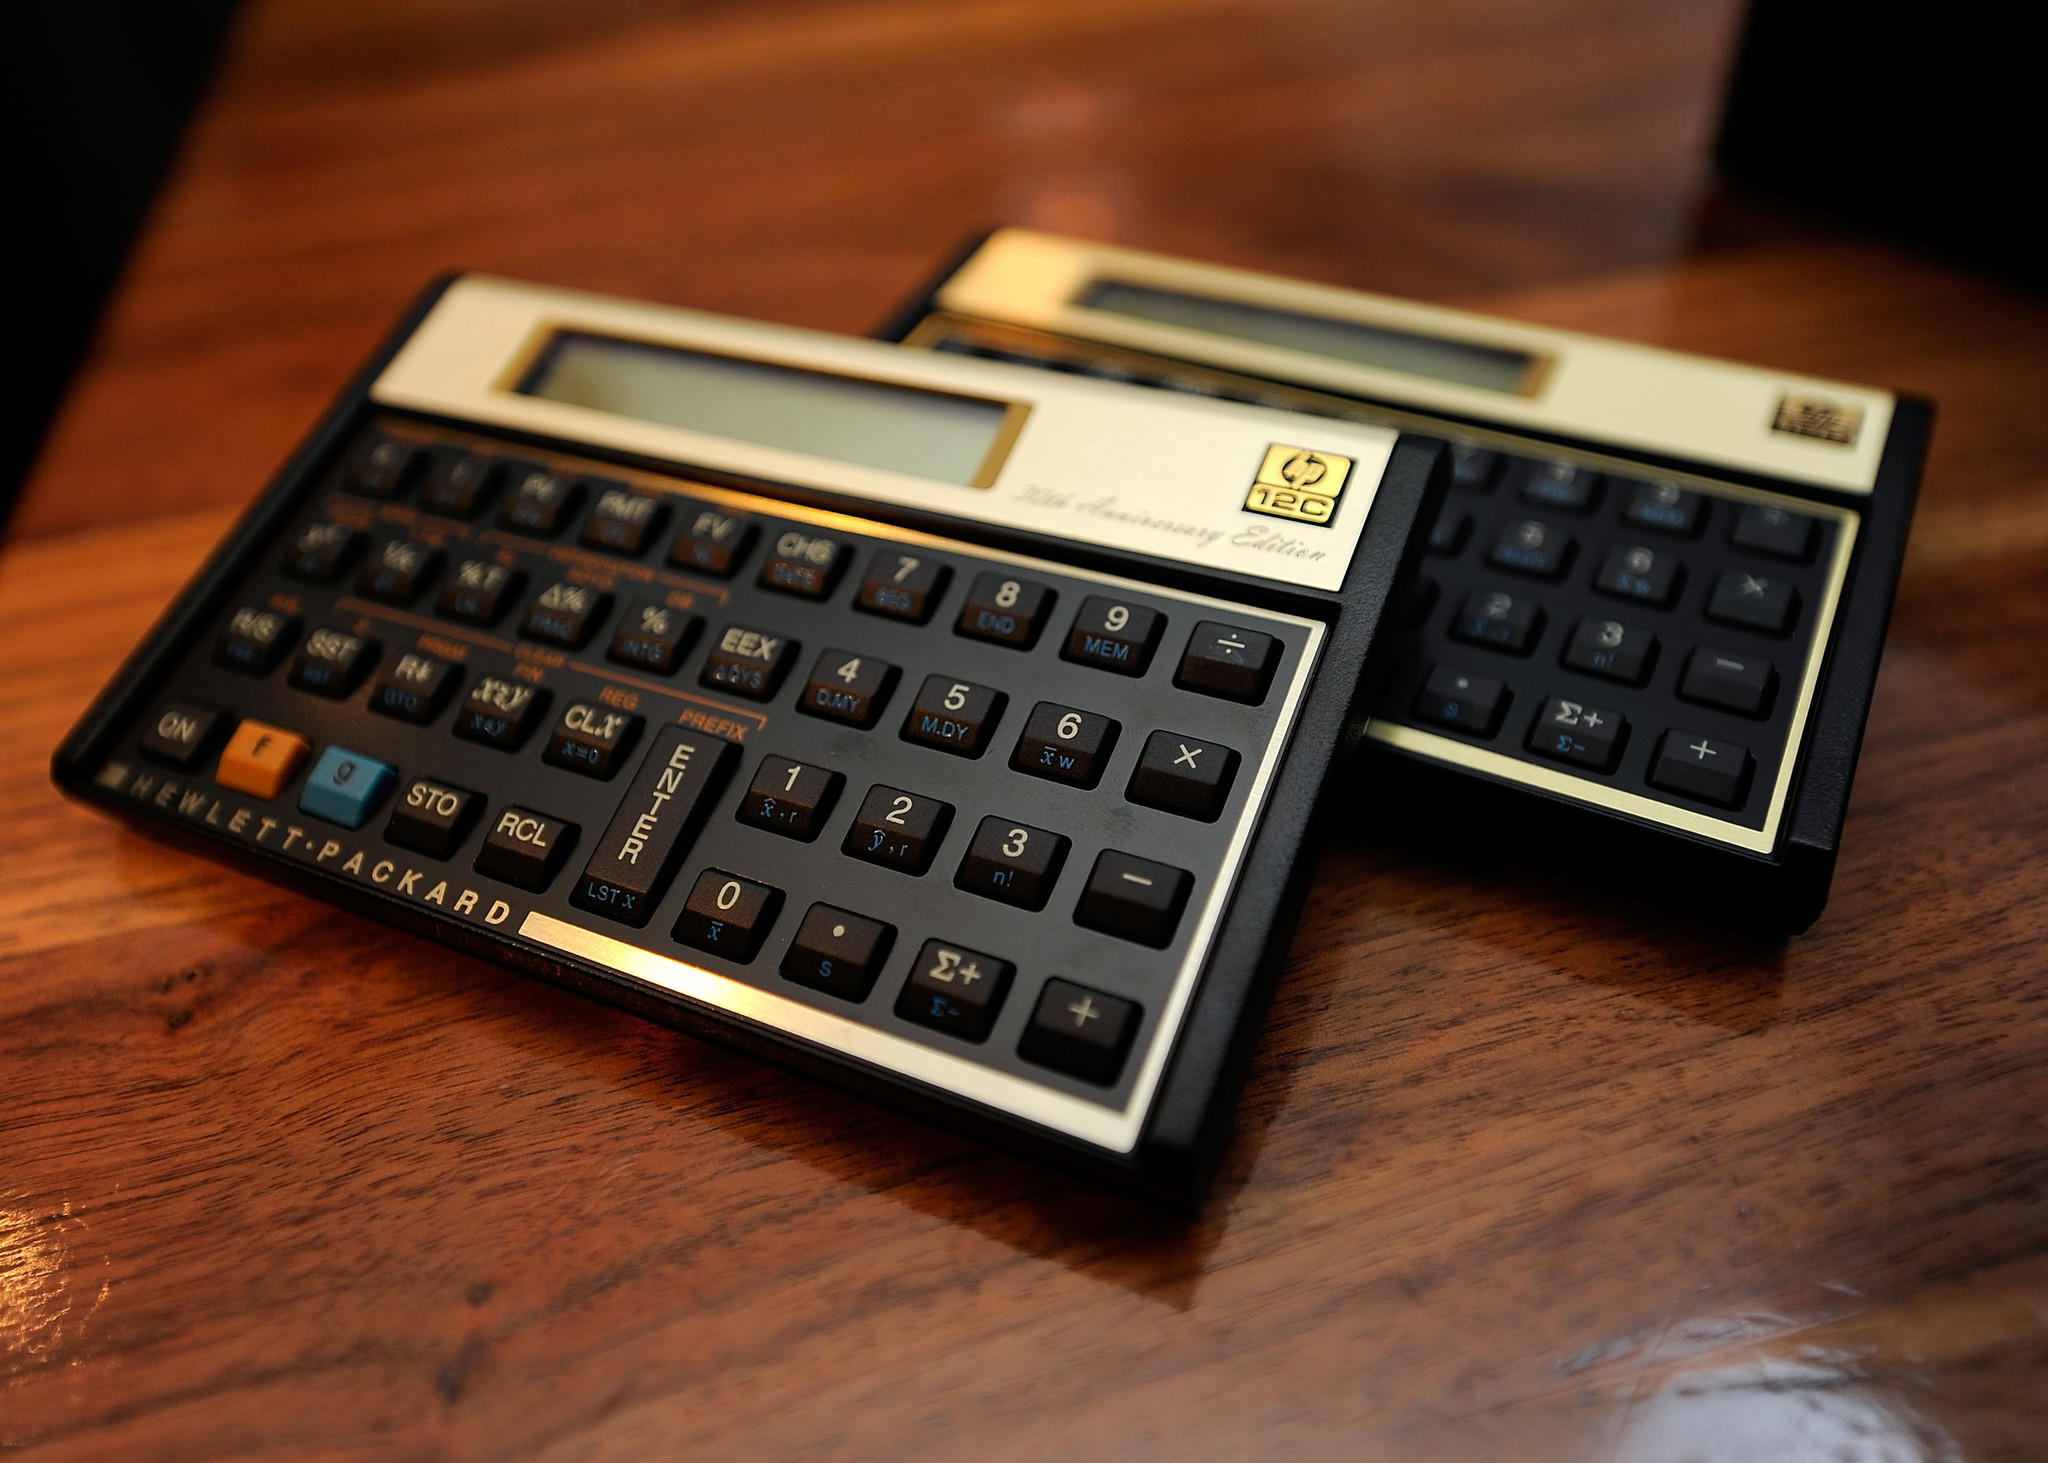 HP's 30th Anniversary edition of the 12c Calculator.